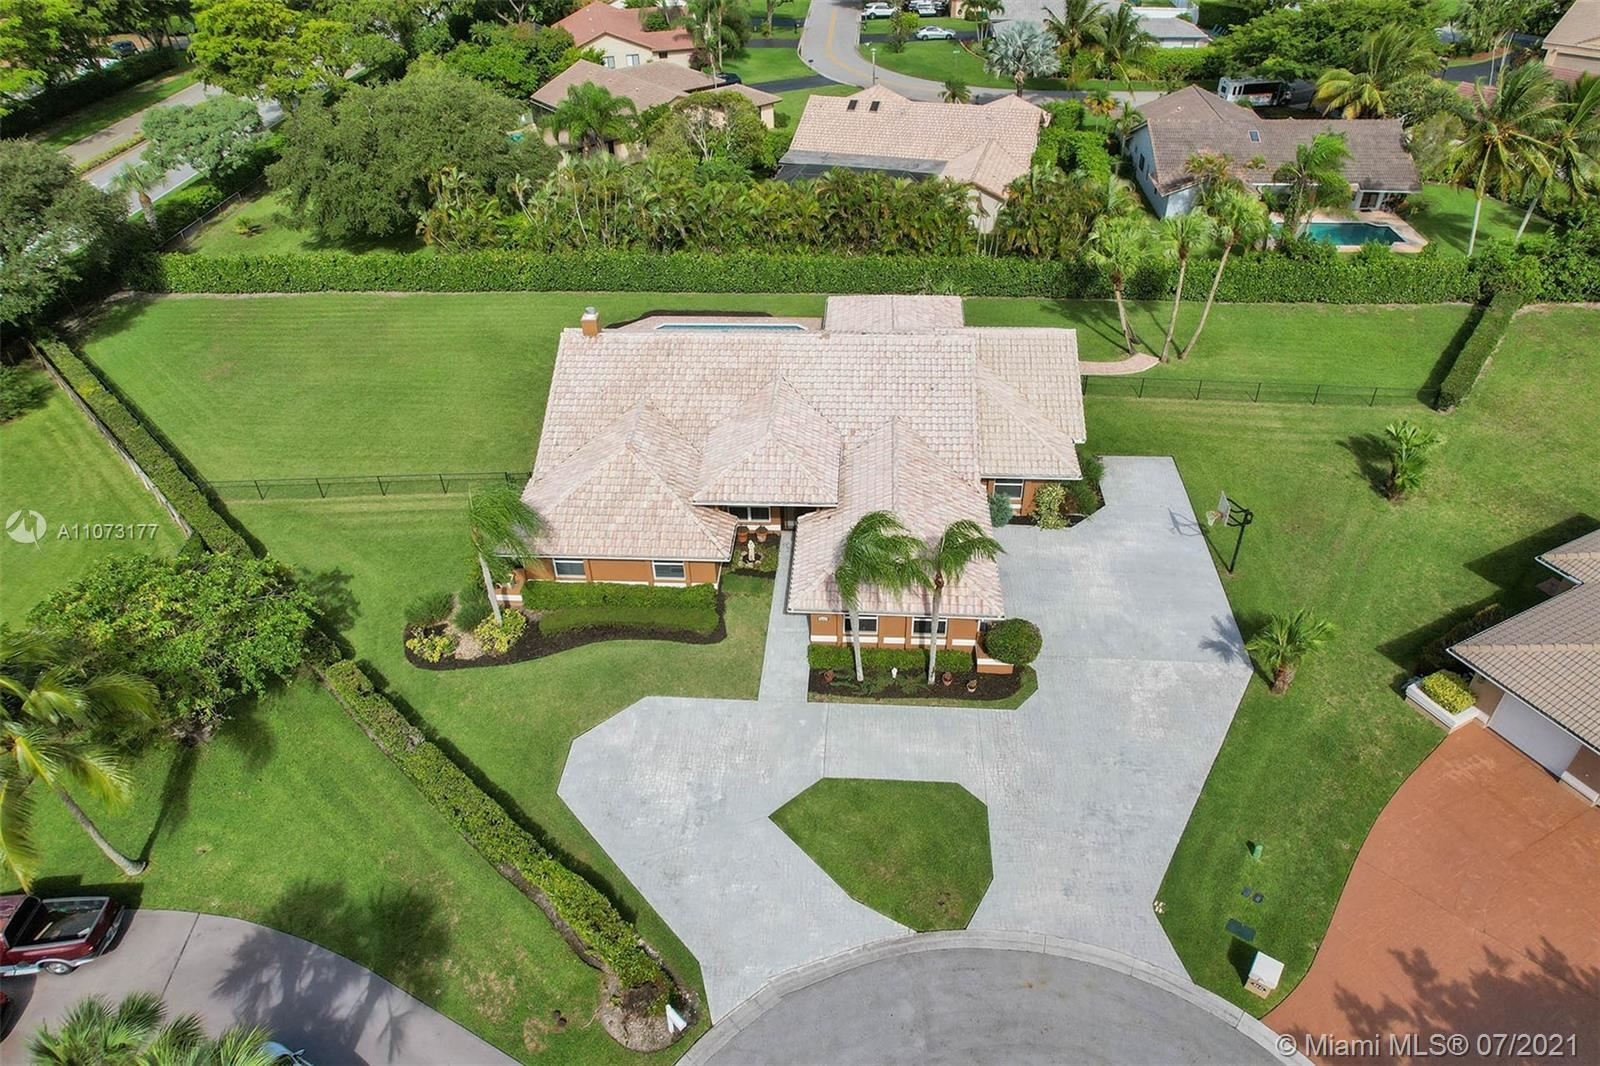 Photo of 8251 NW 49th Ct, Coral Springs, FL 33067 (MLS # A11073177)